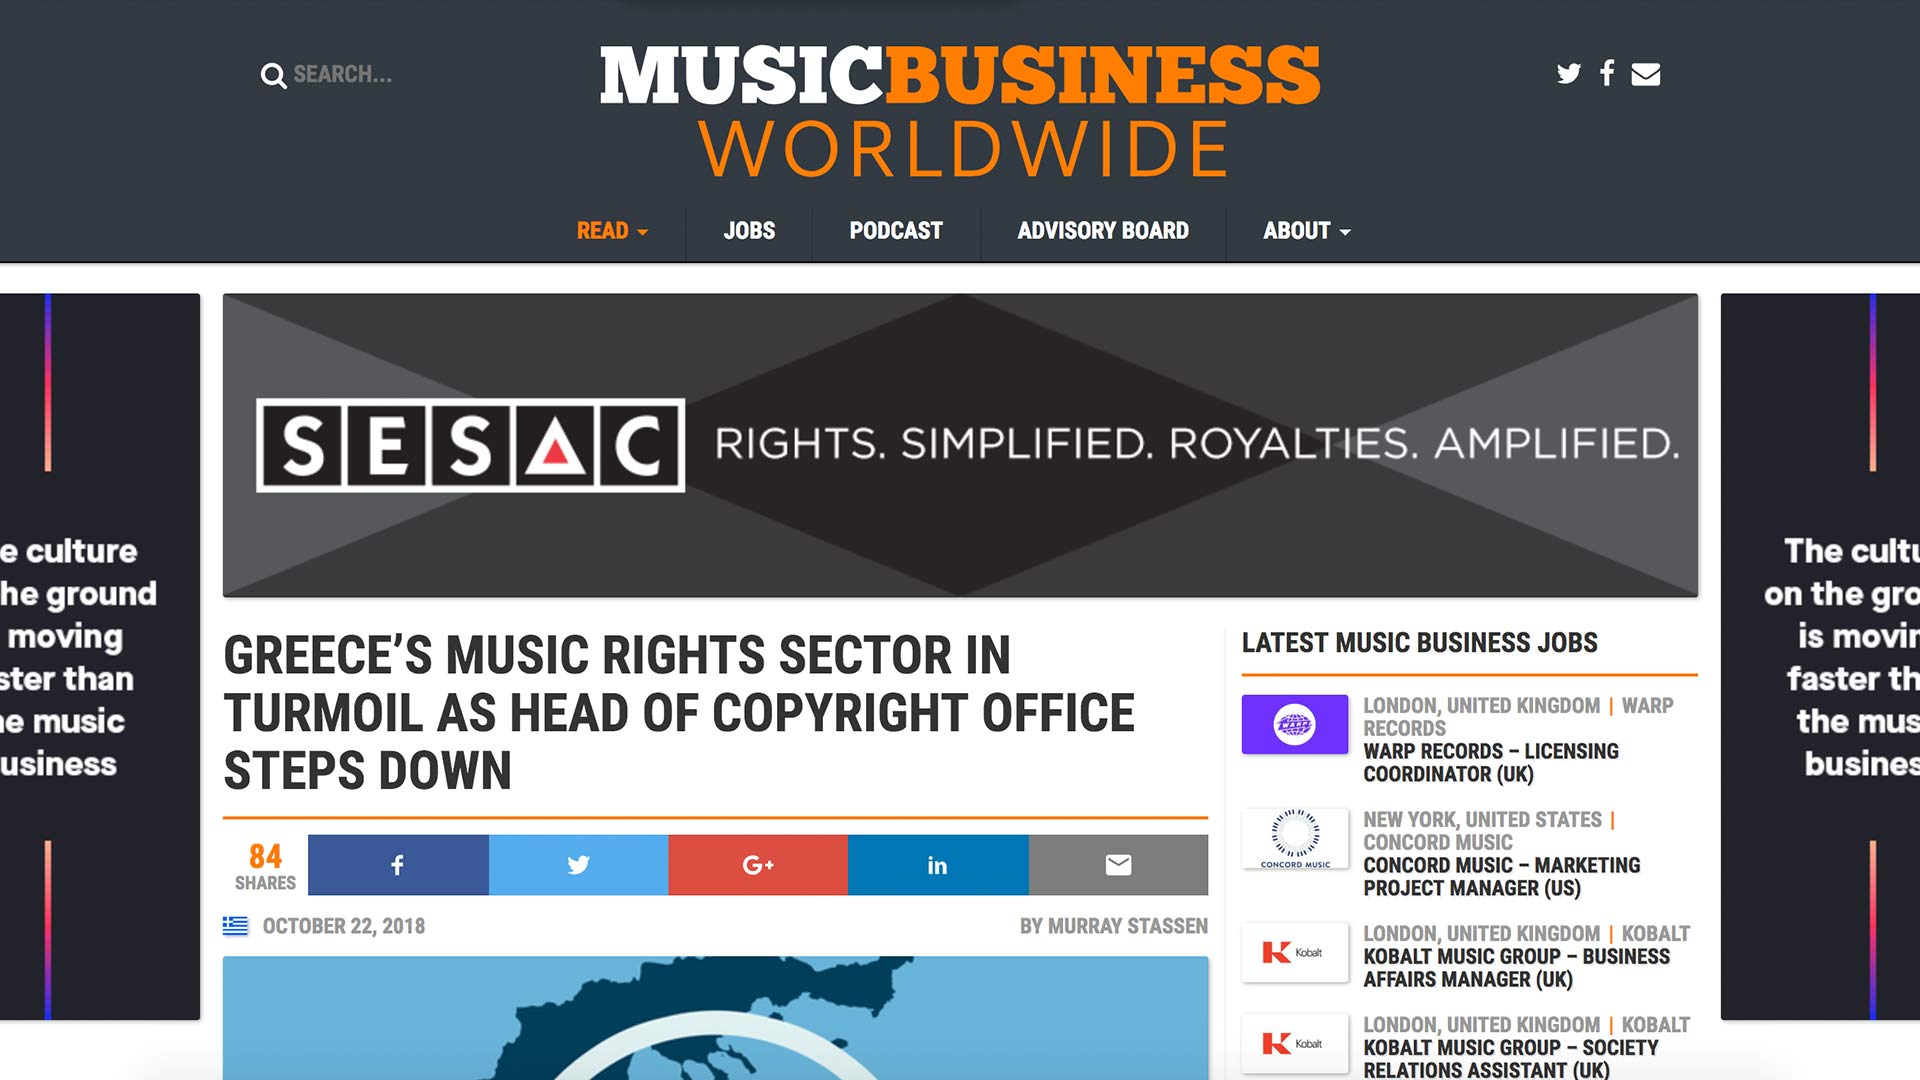 Fairness Rocks News GREECE'S MUSIC RIGHTS SECTOR IN TURMOIL AS HEAD OF COPYRIGHT OFFICE STEPS DOWN